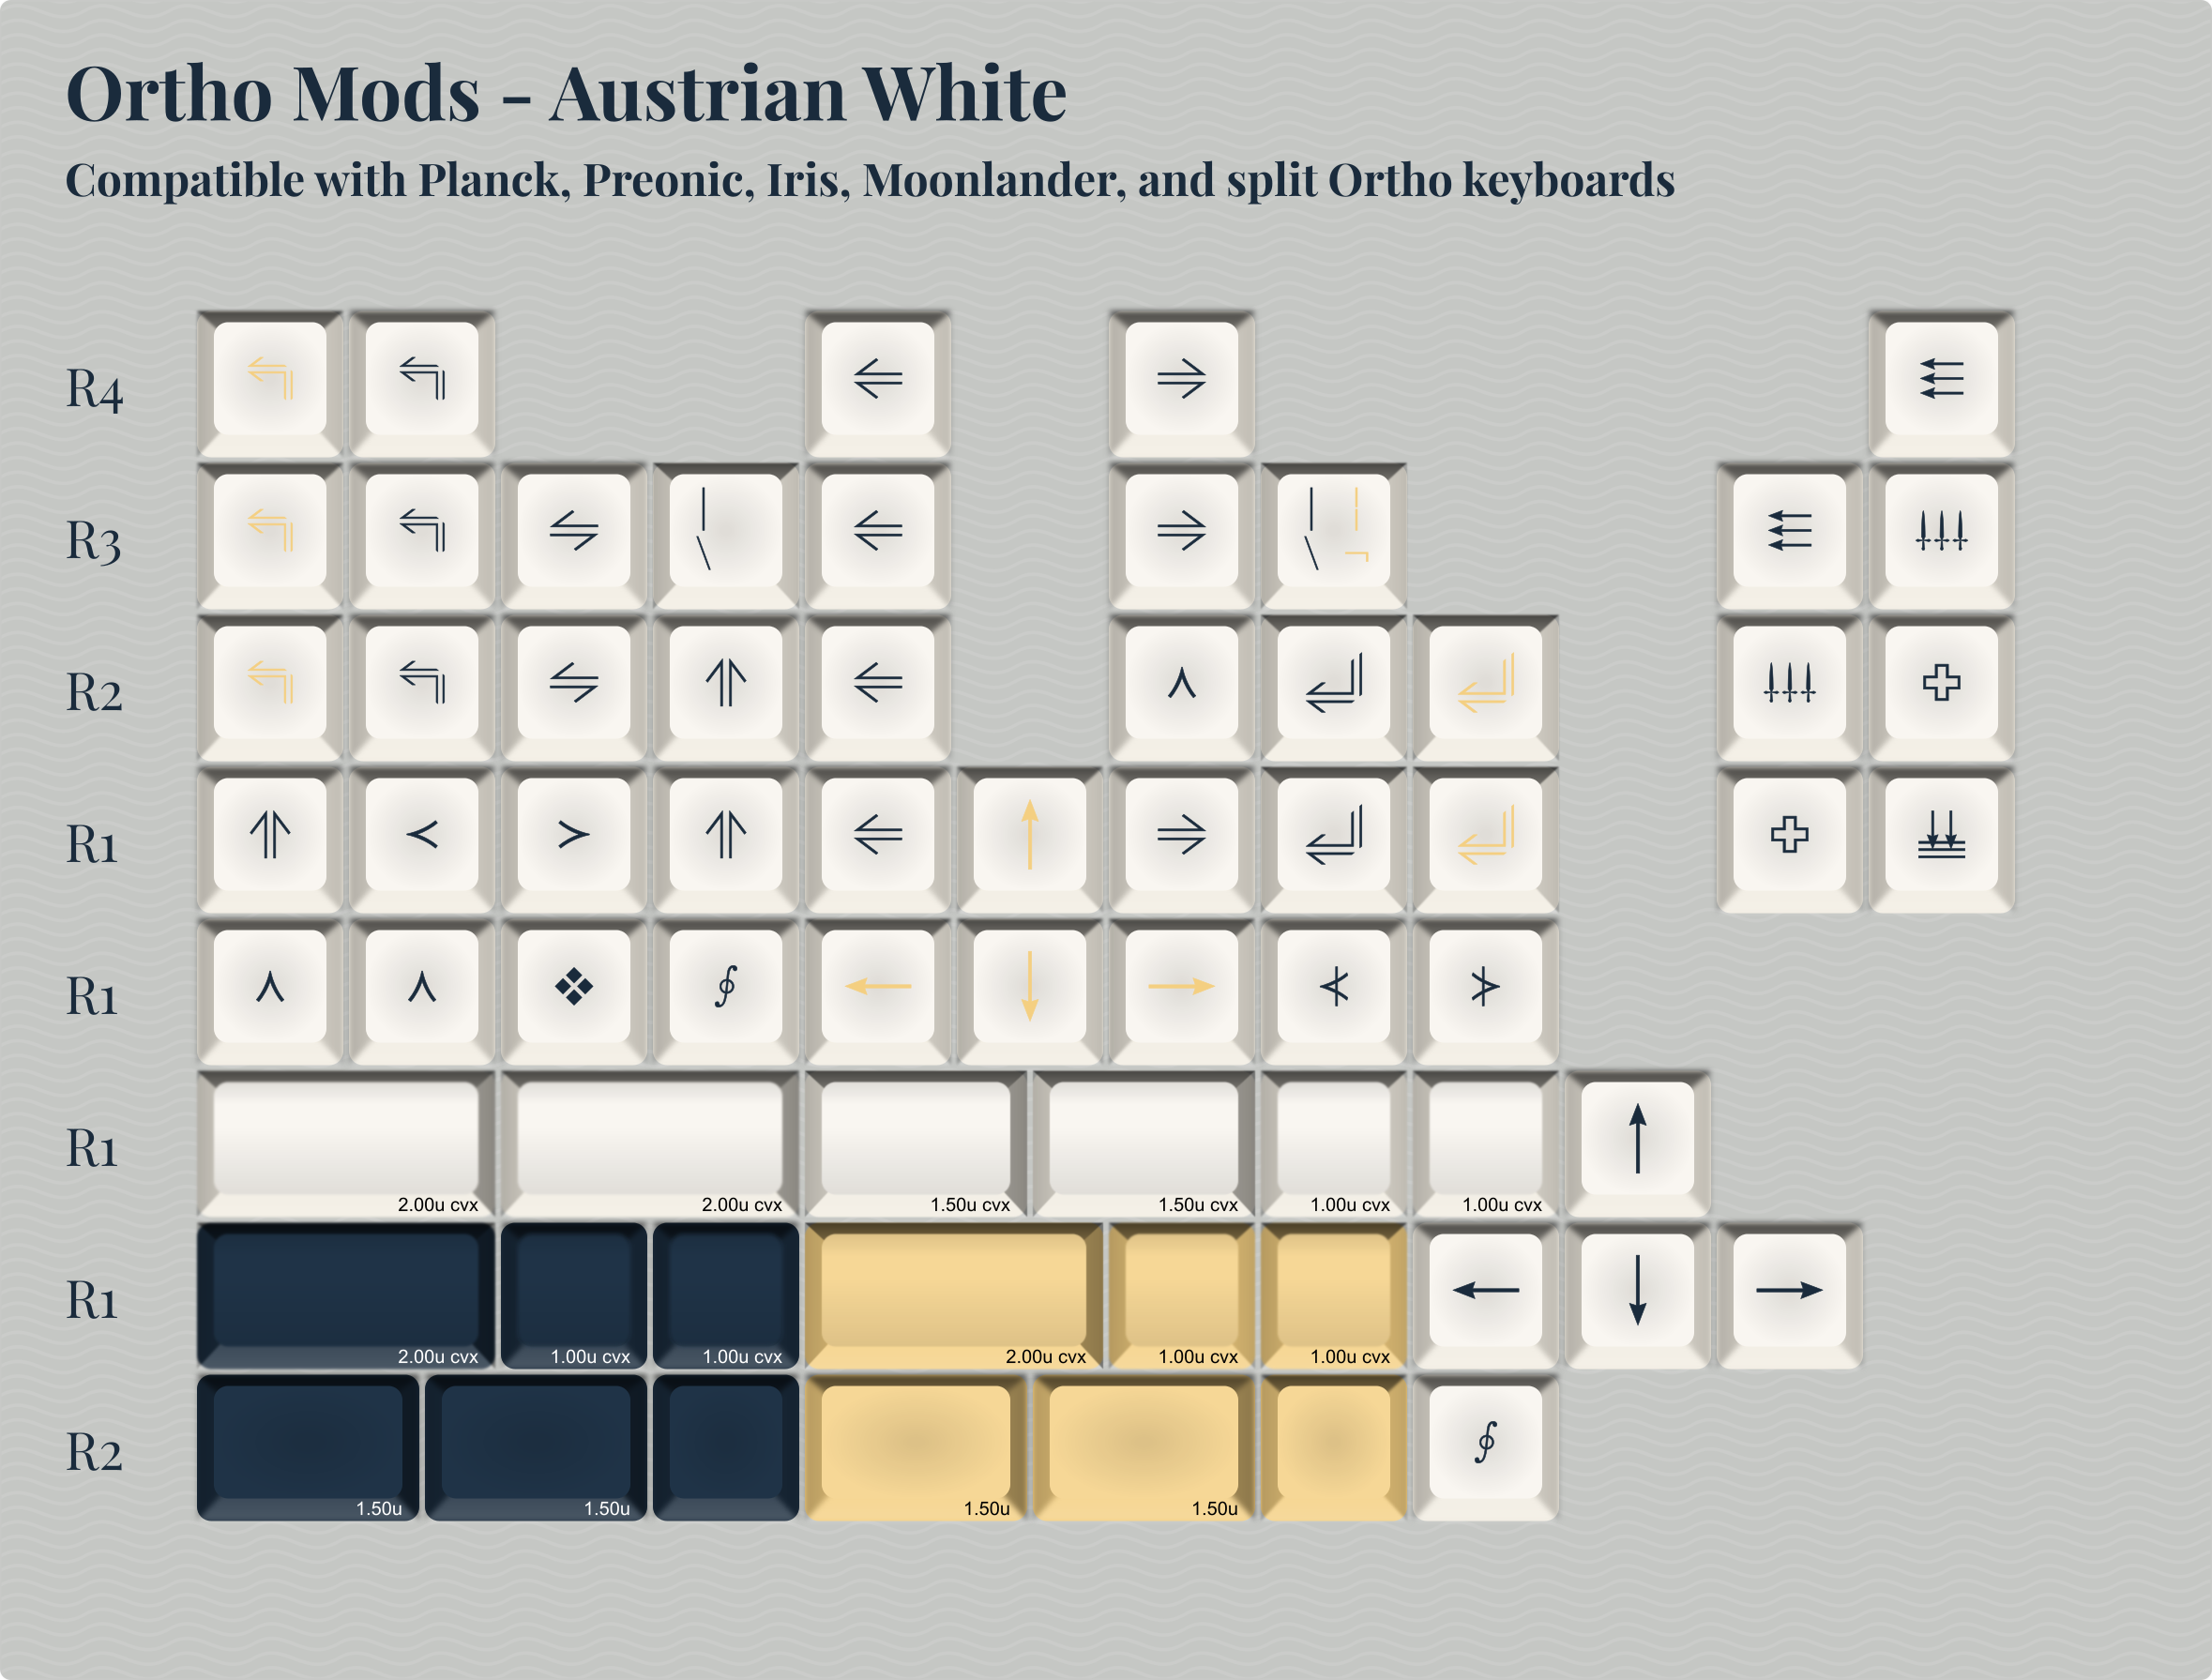 Ortho Mods - Austrian White